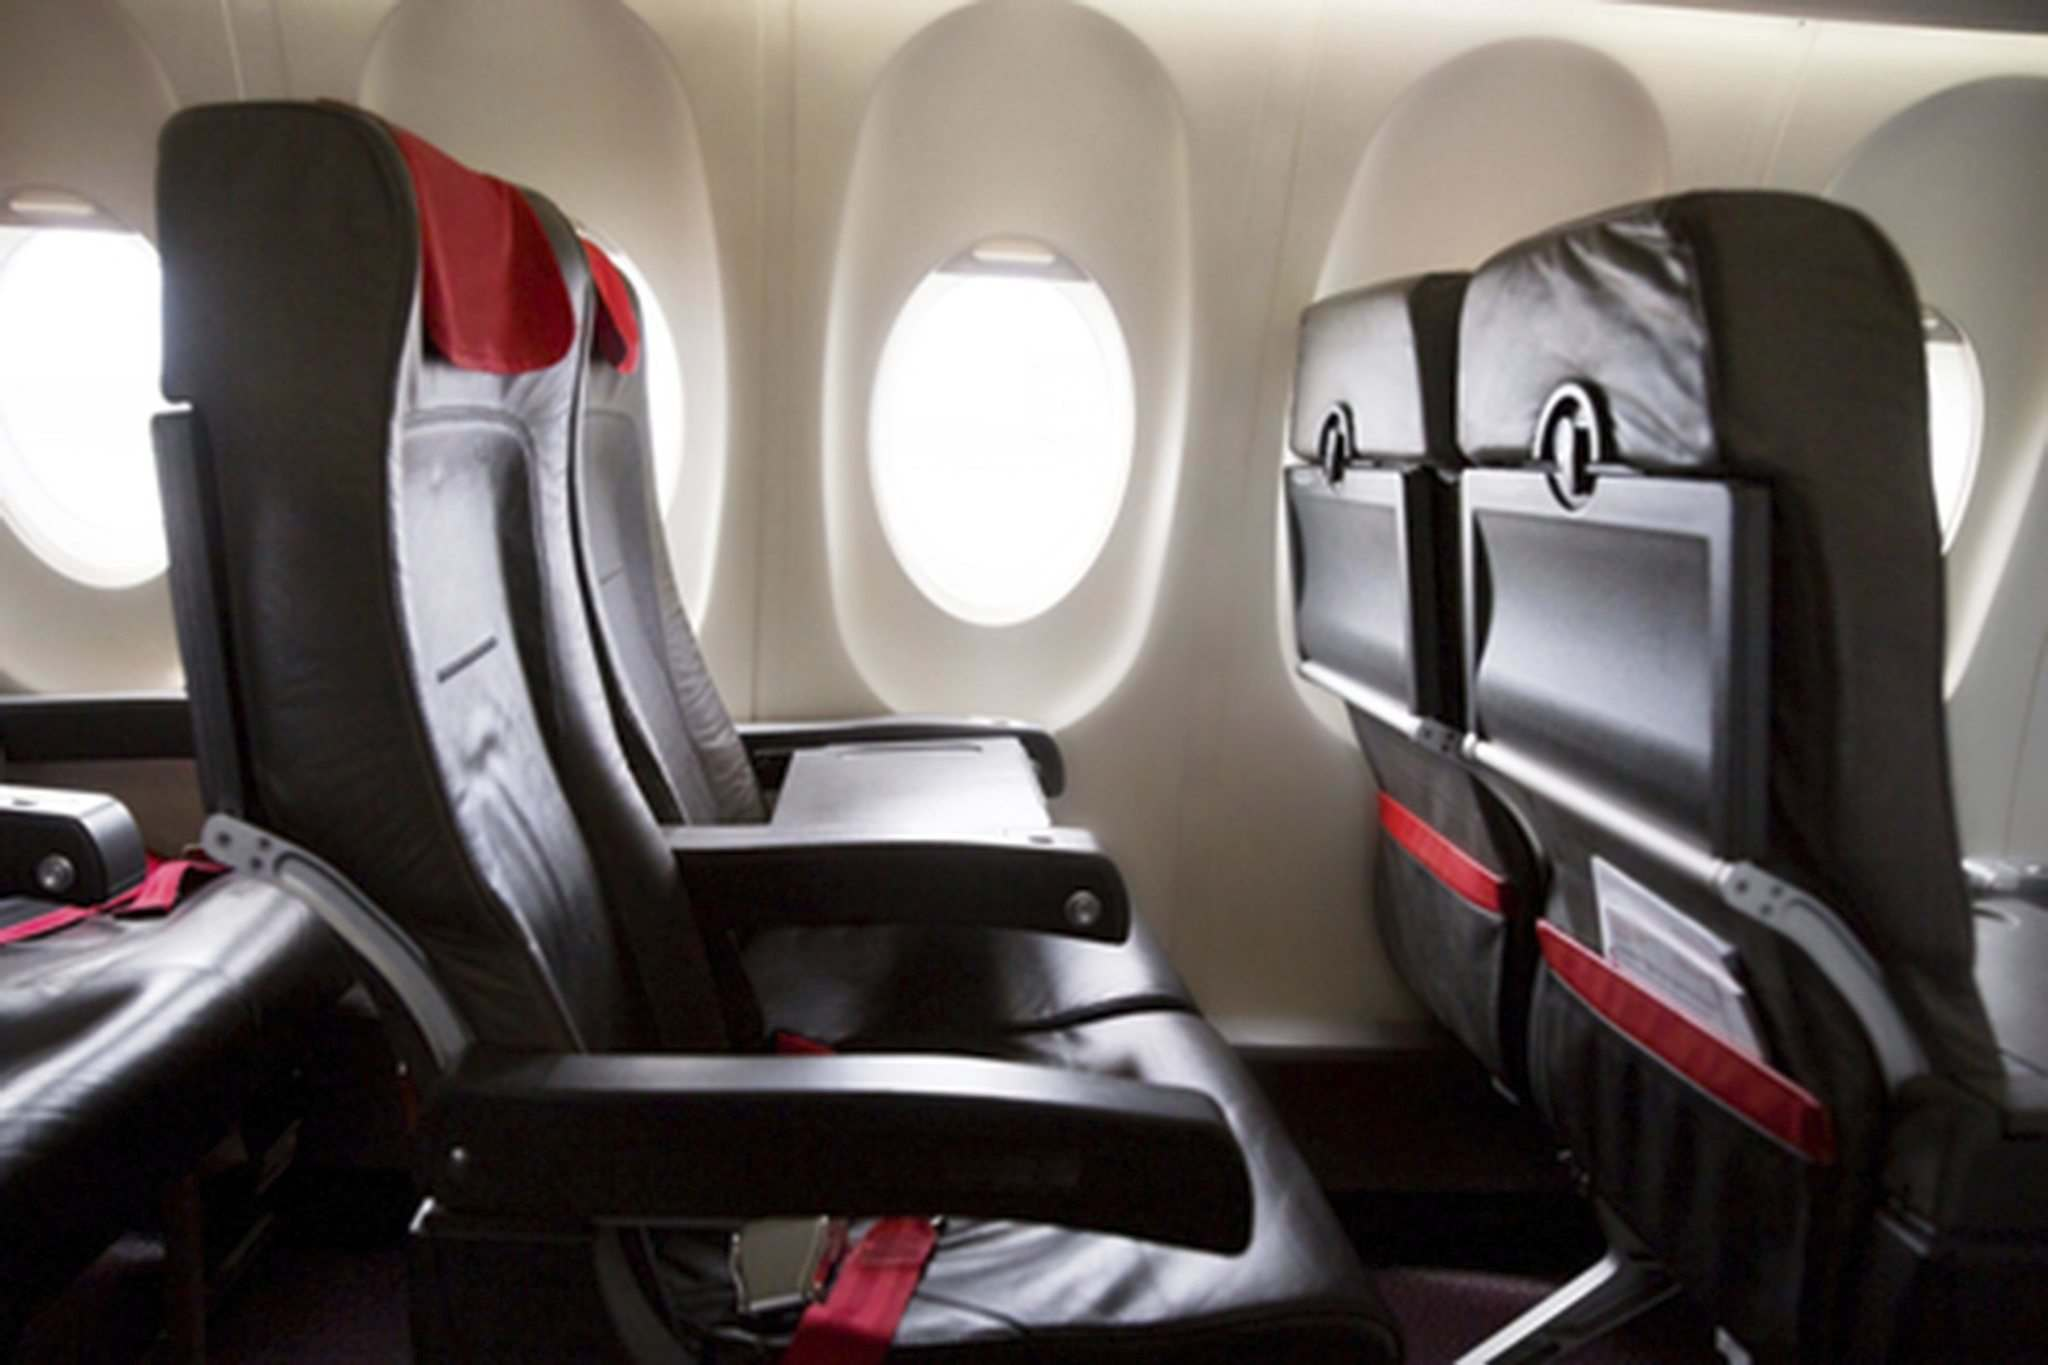 Germs on airplane seats and trays are more likely to be a problem than those in the air. (Dreamstime / TNS files)